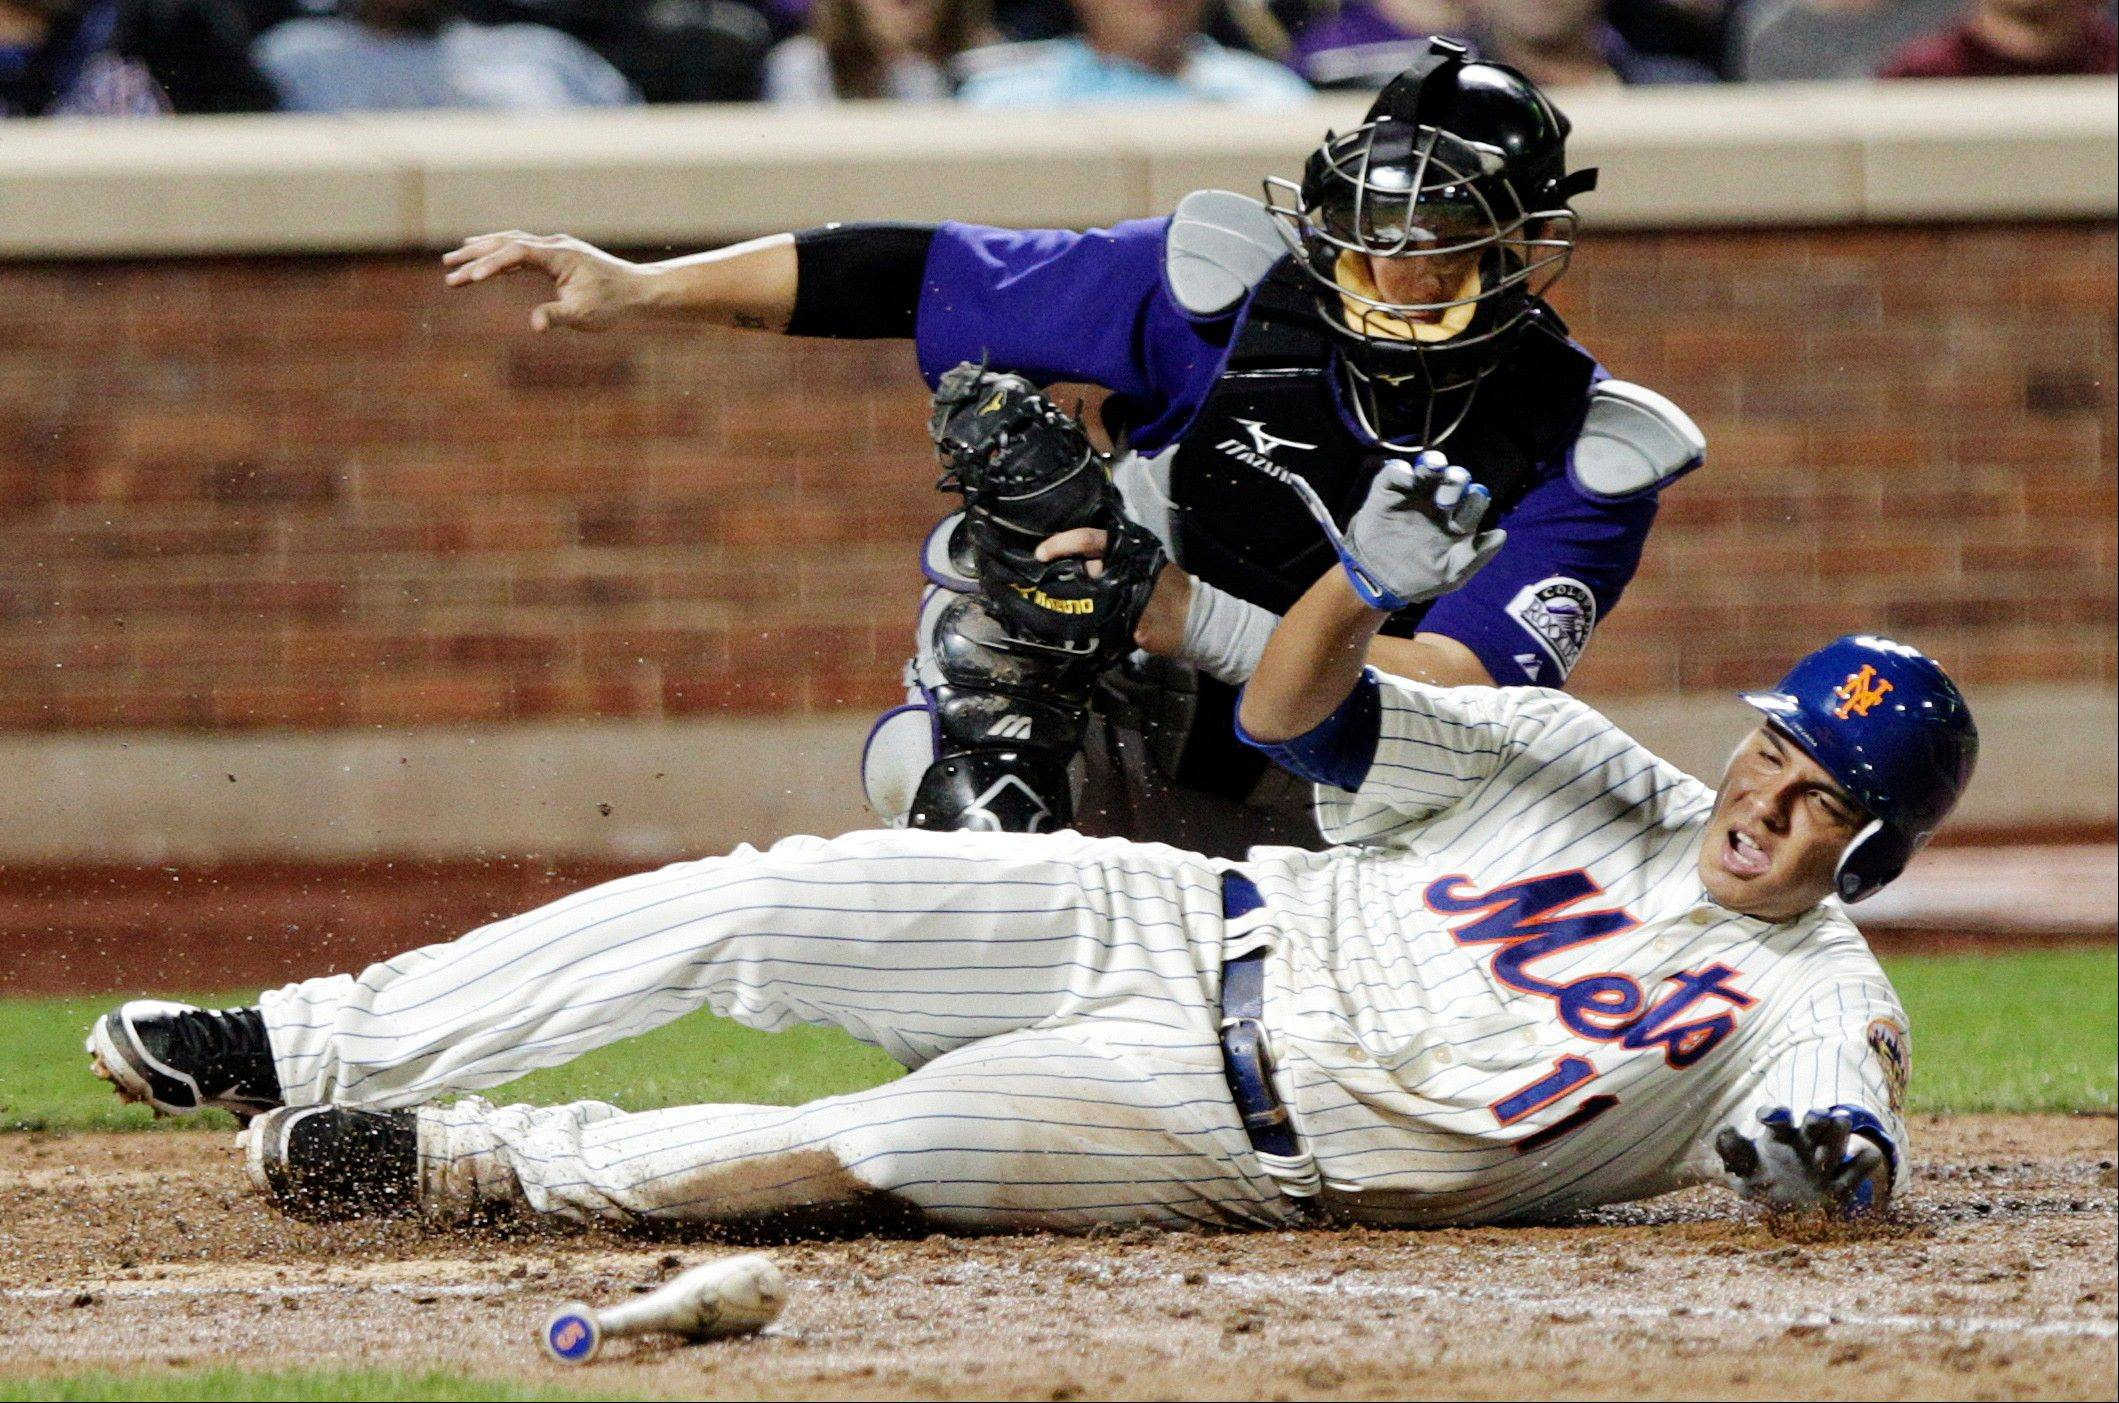 Rockies catcher Ramon Hernandez tags out the Mets' Ruben Tejada at home plate during the sixth inning Tuesday in New York.